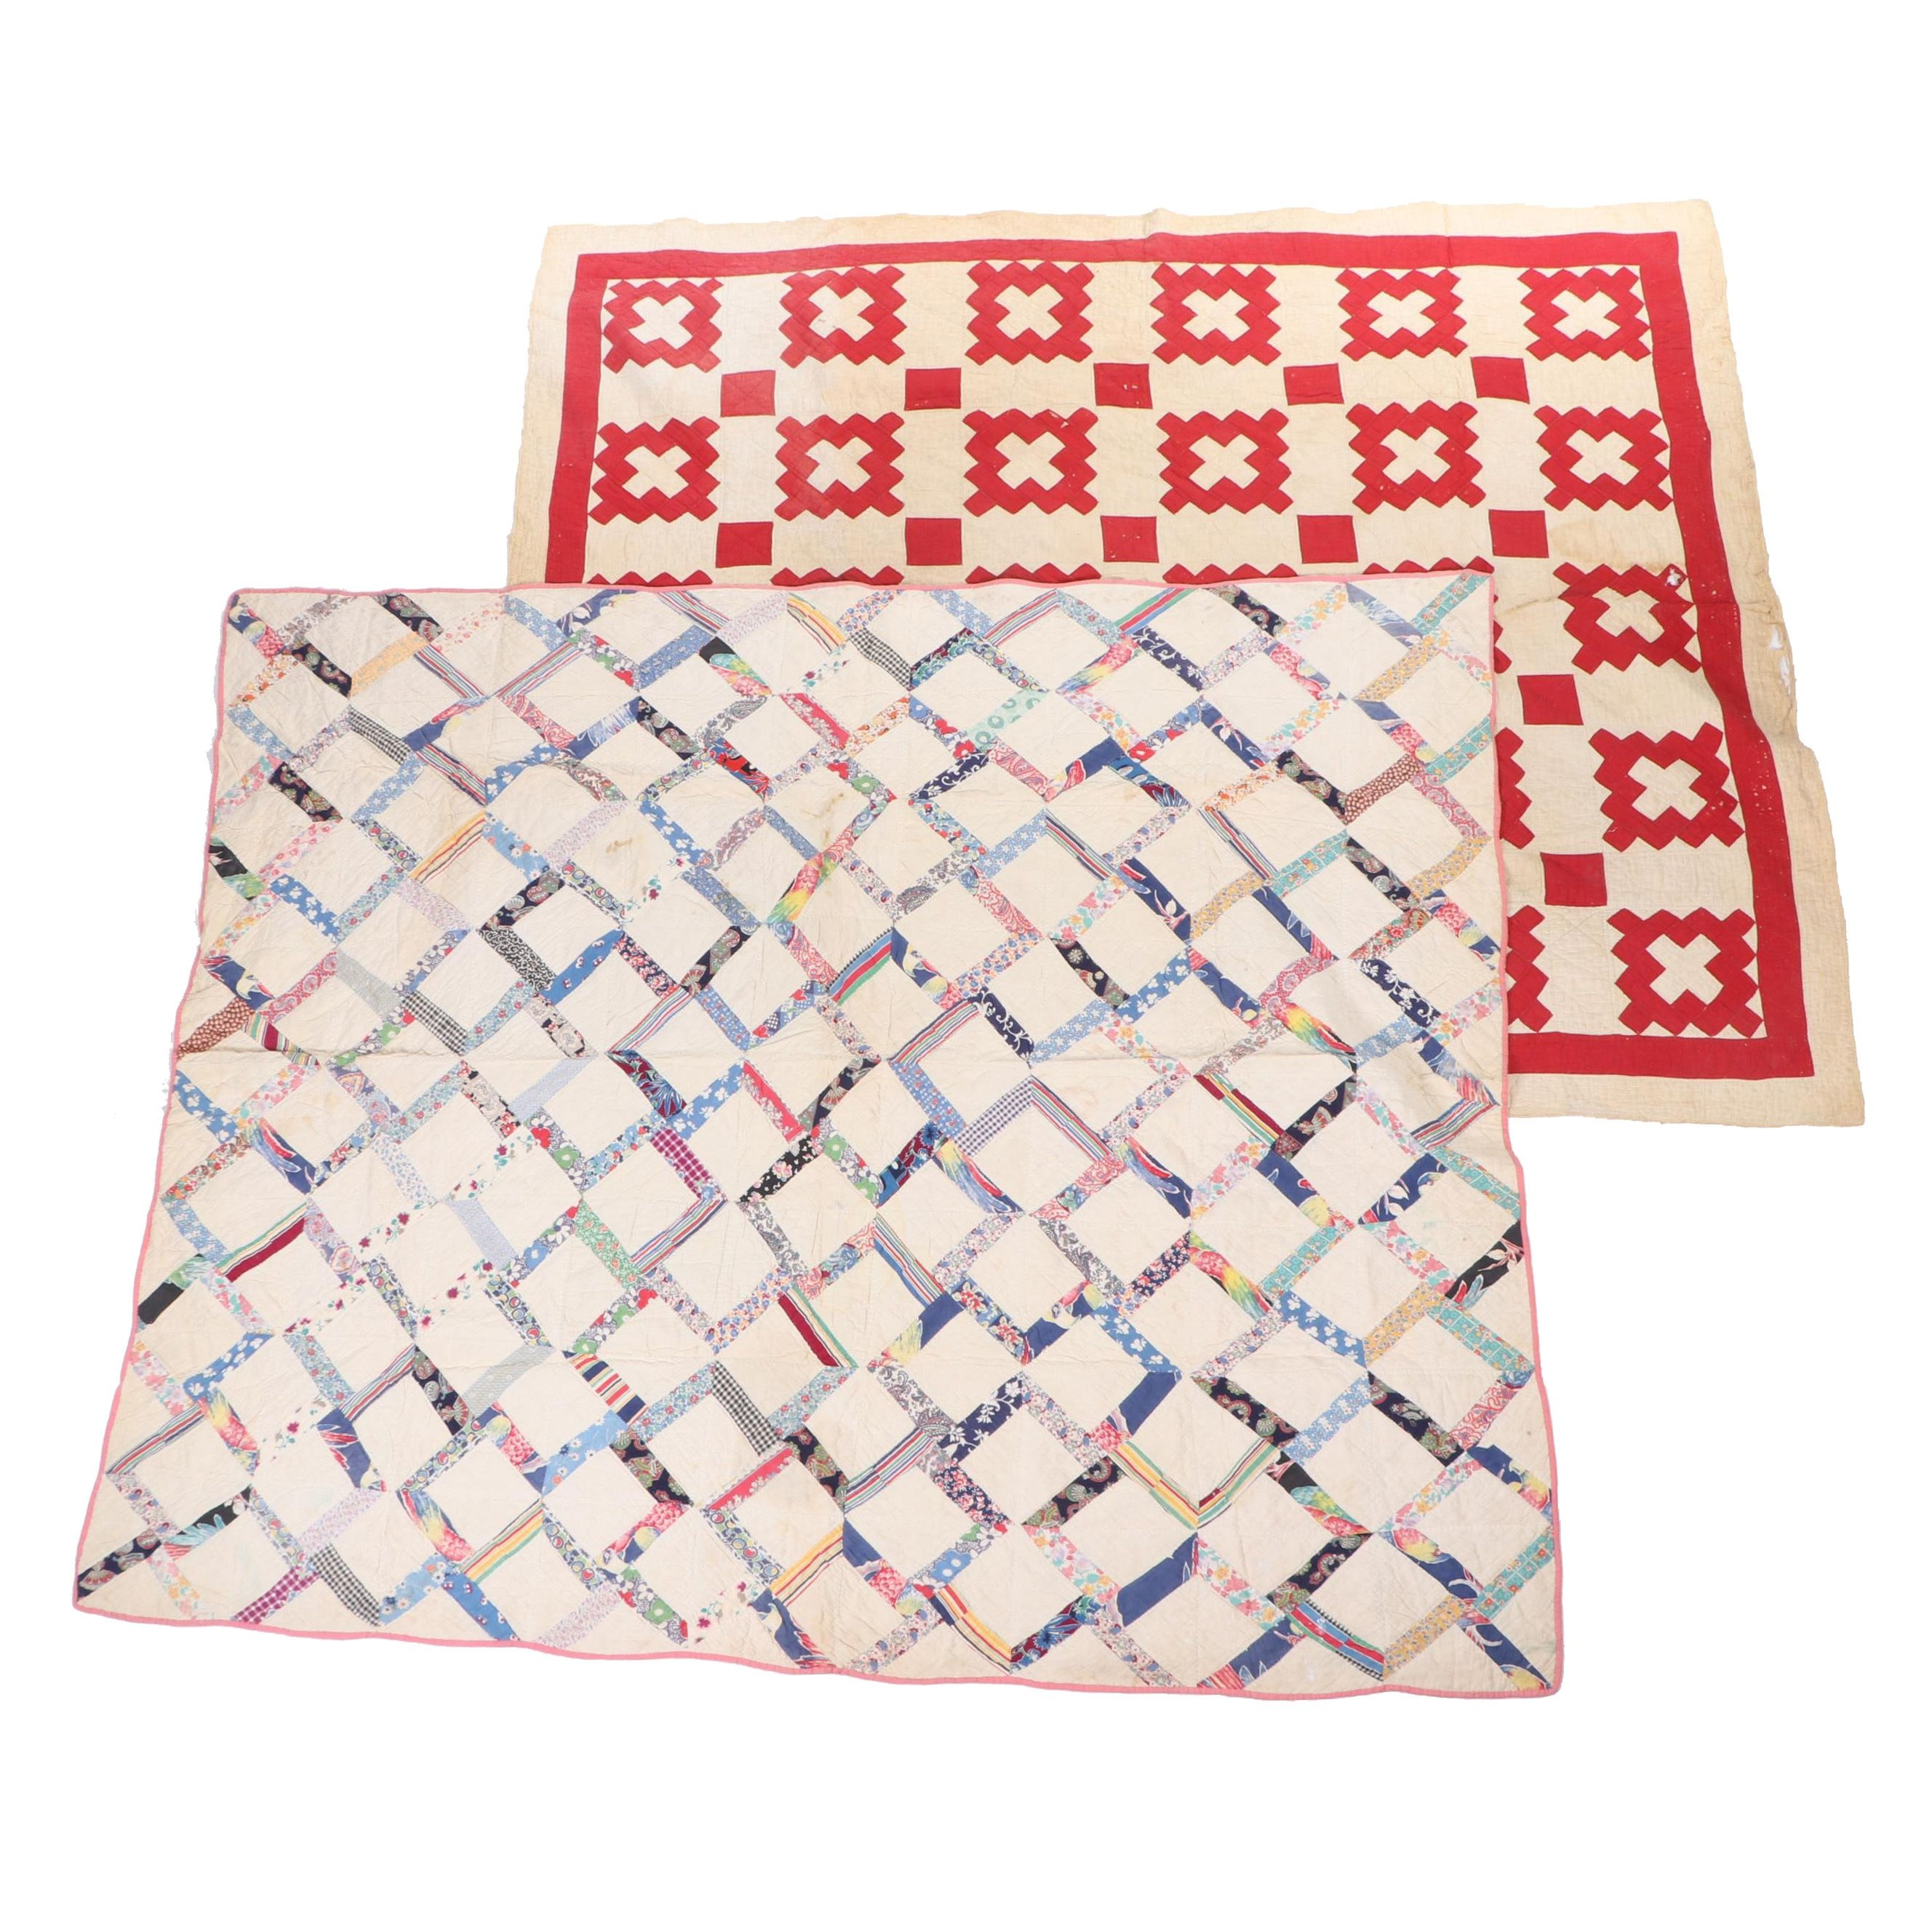 Hand-Stitched Quilts, Early to Mid 20th Century